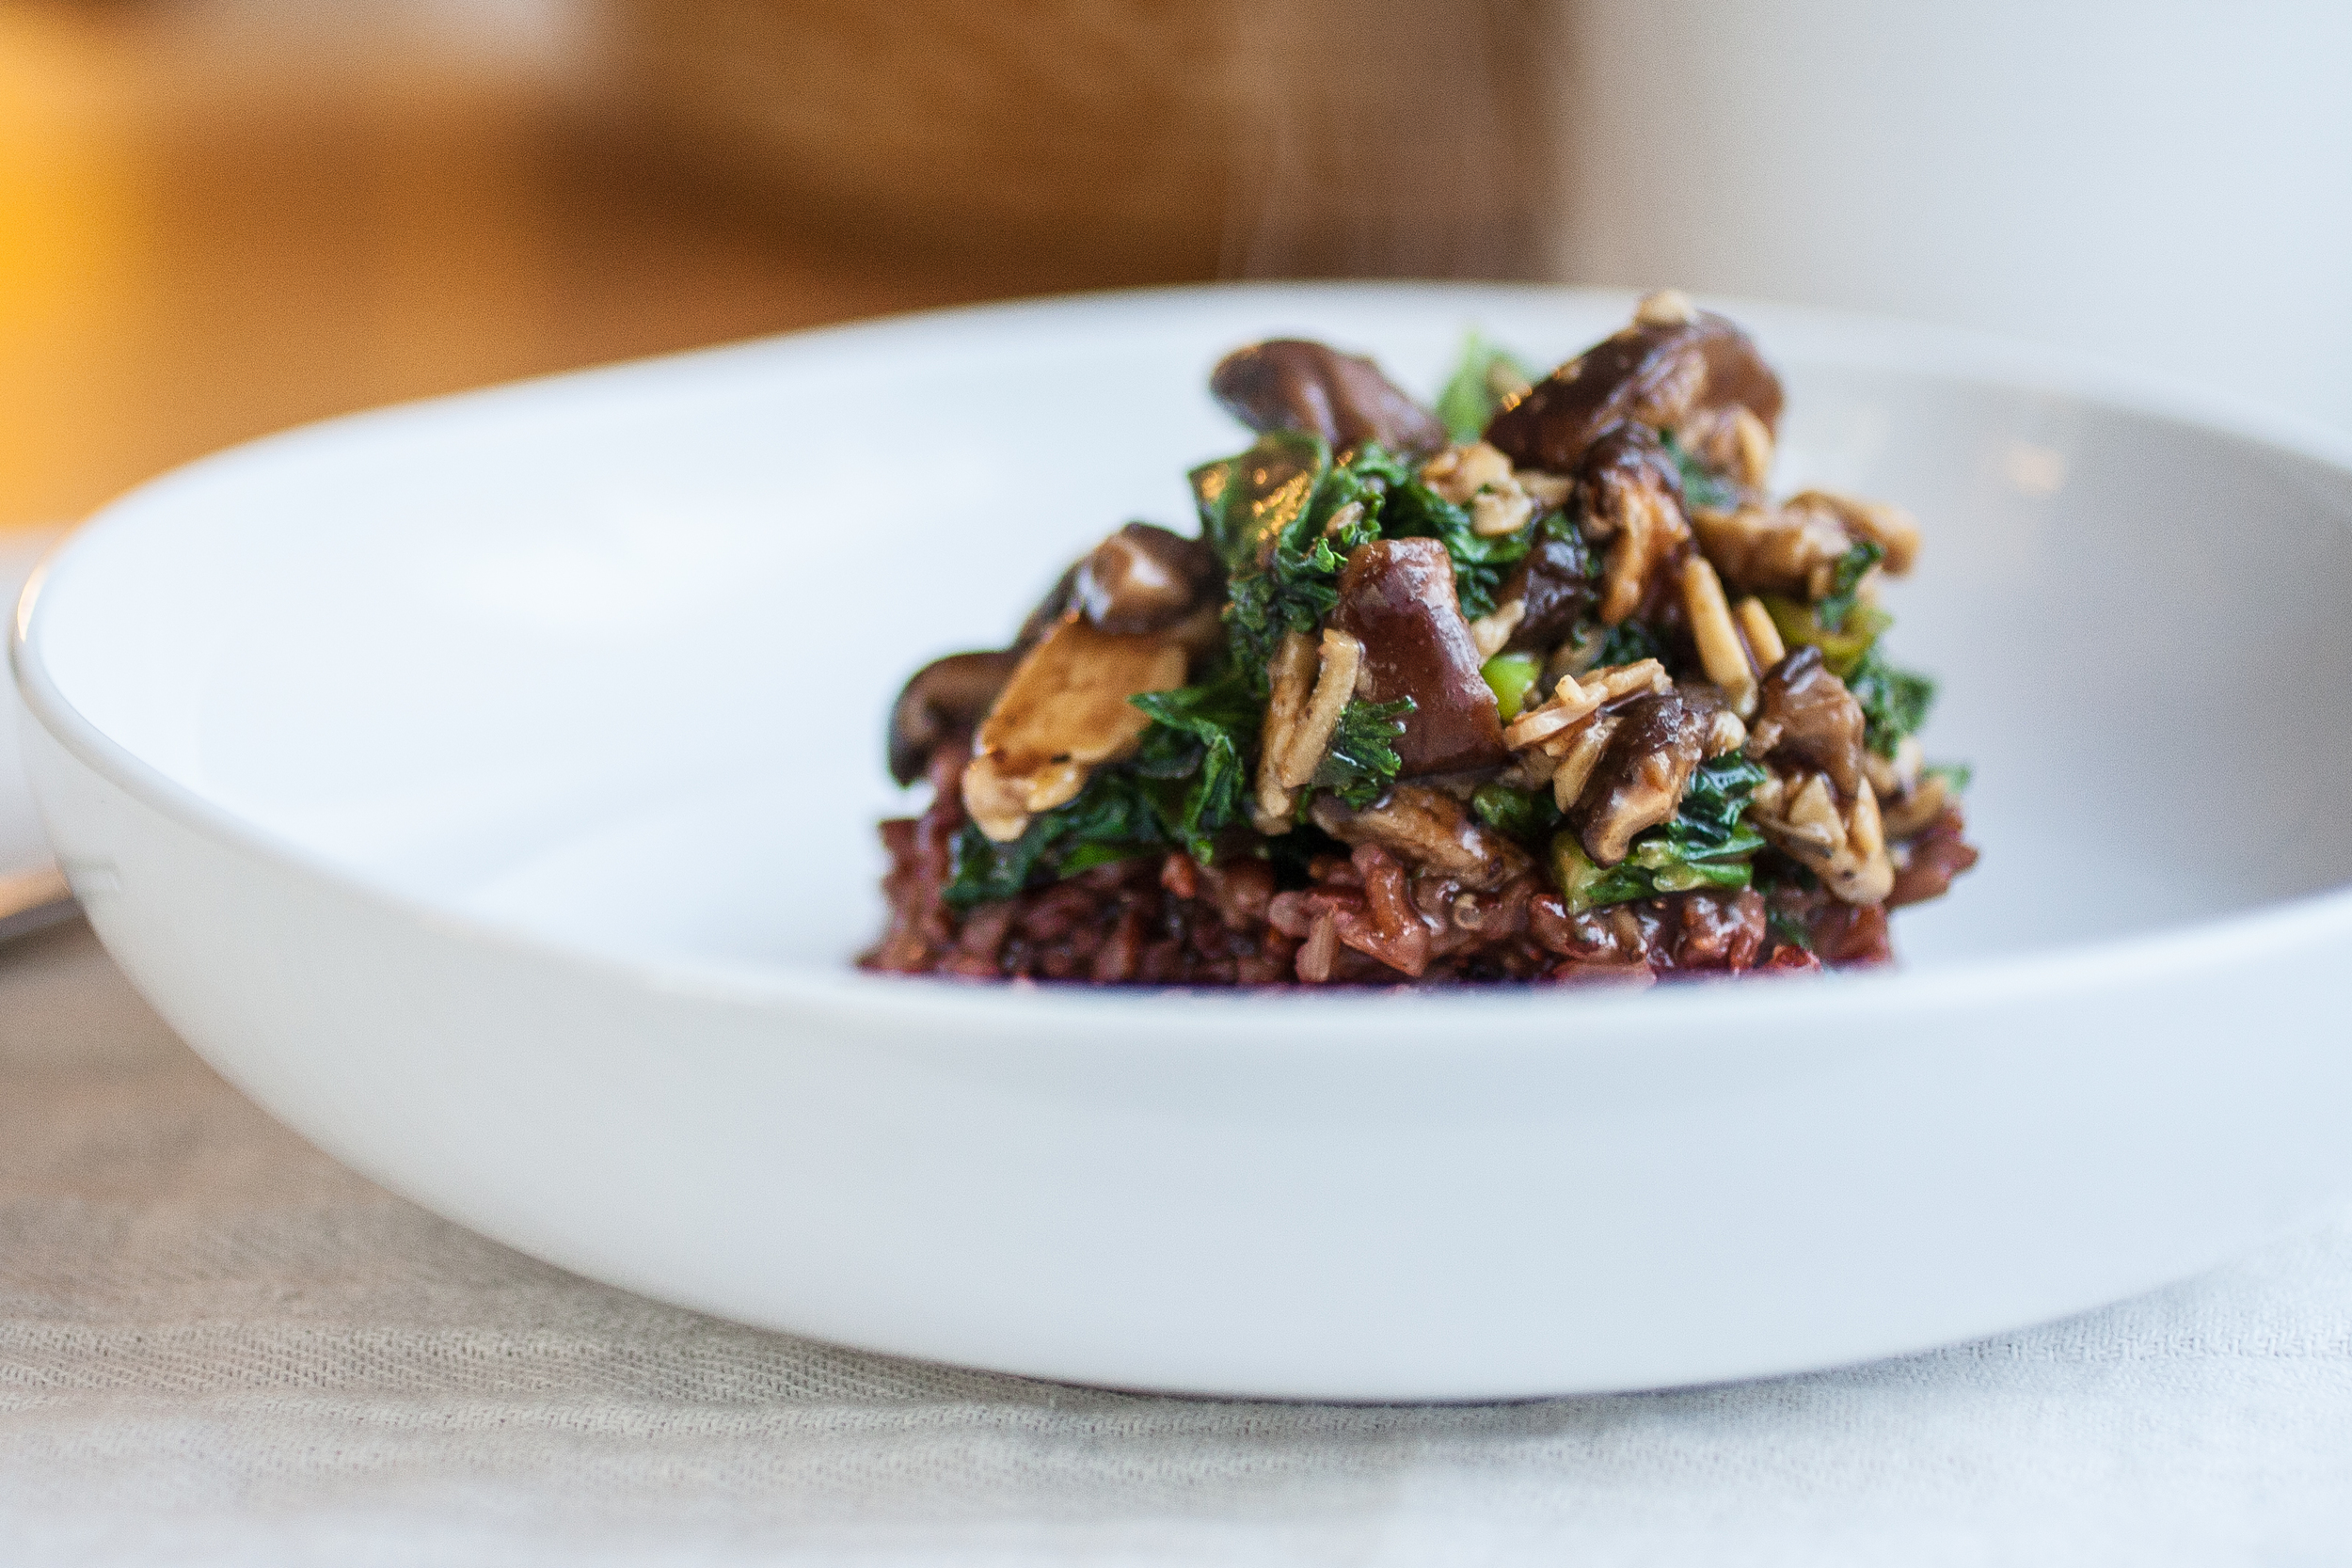 Produce On Parade - Shiitake Tempeh and Kale Stir-Fry - This is delicious stir-fry of marinated tempeh, rich shiitake mushrooms, and sautéed kale in a garlic-ginger sauce, over red rice.